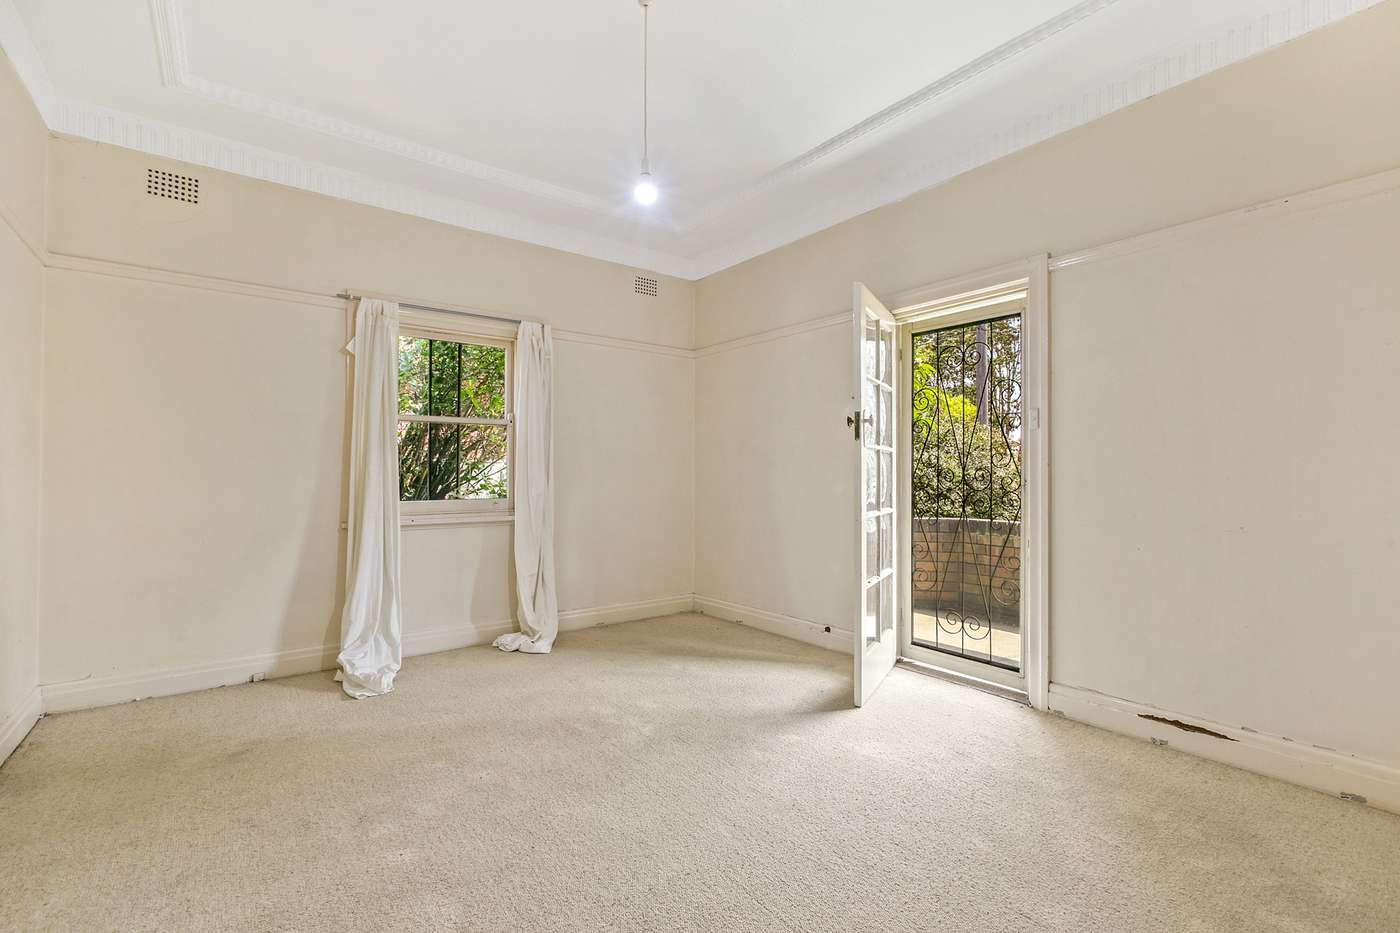 Main view of Homely house listing, 69 Queen Street, North Strathfield, NSW 2137